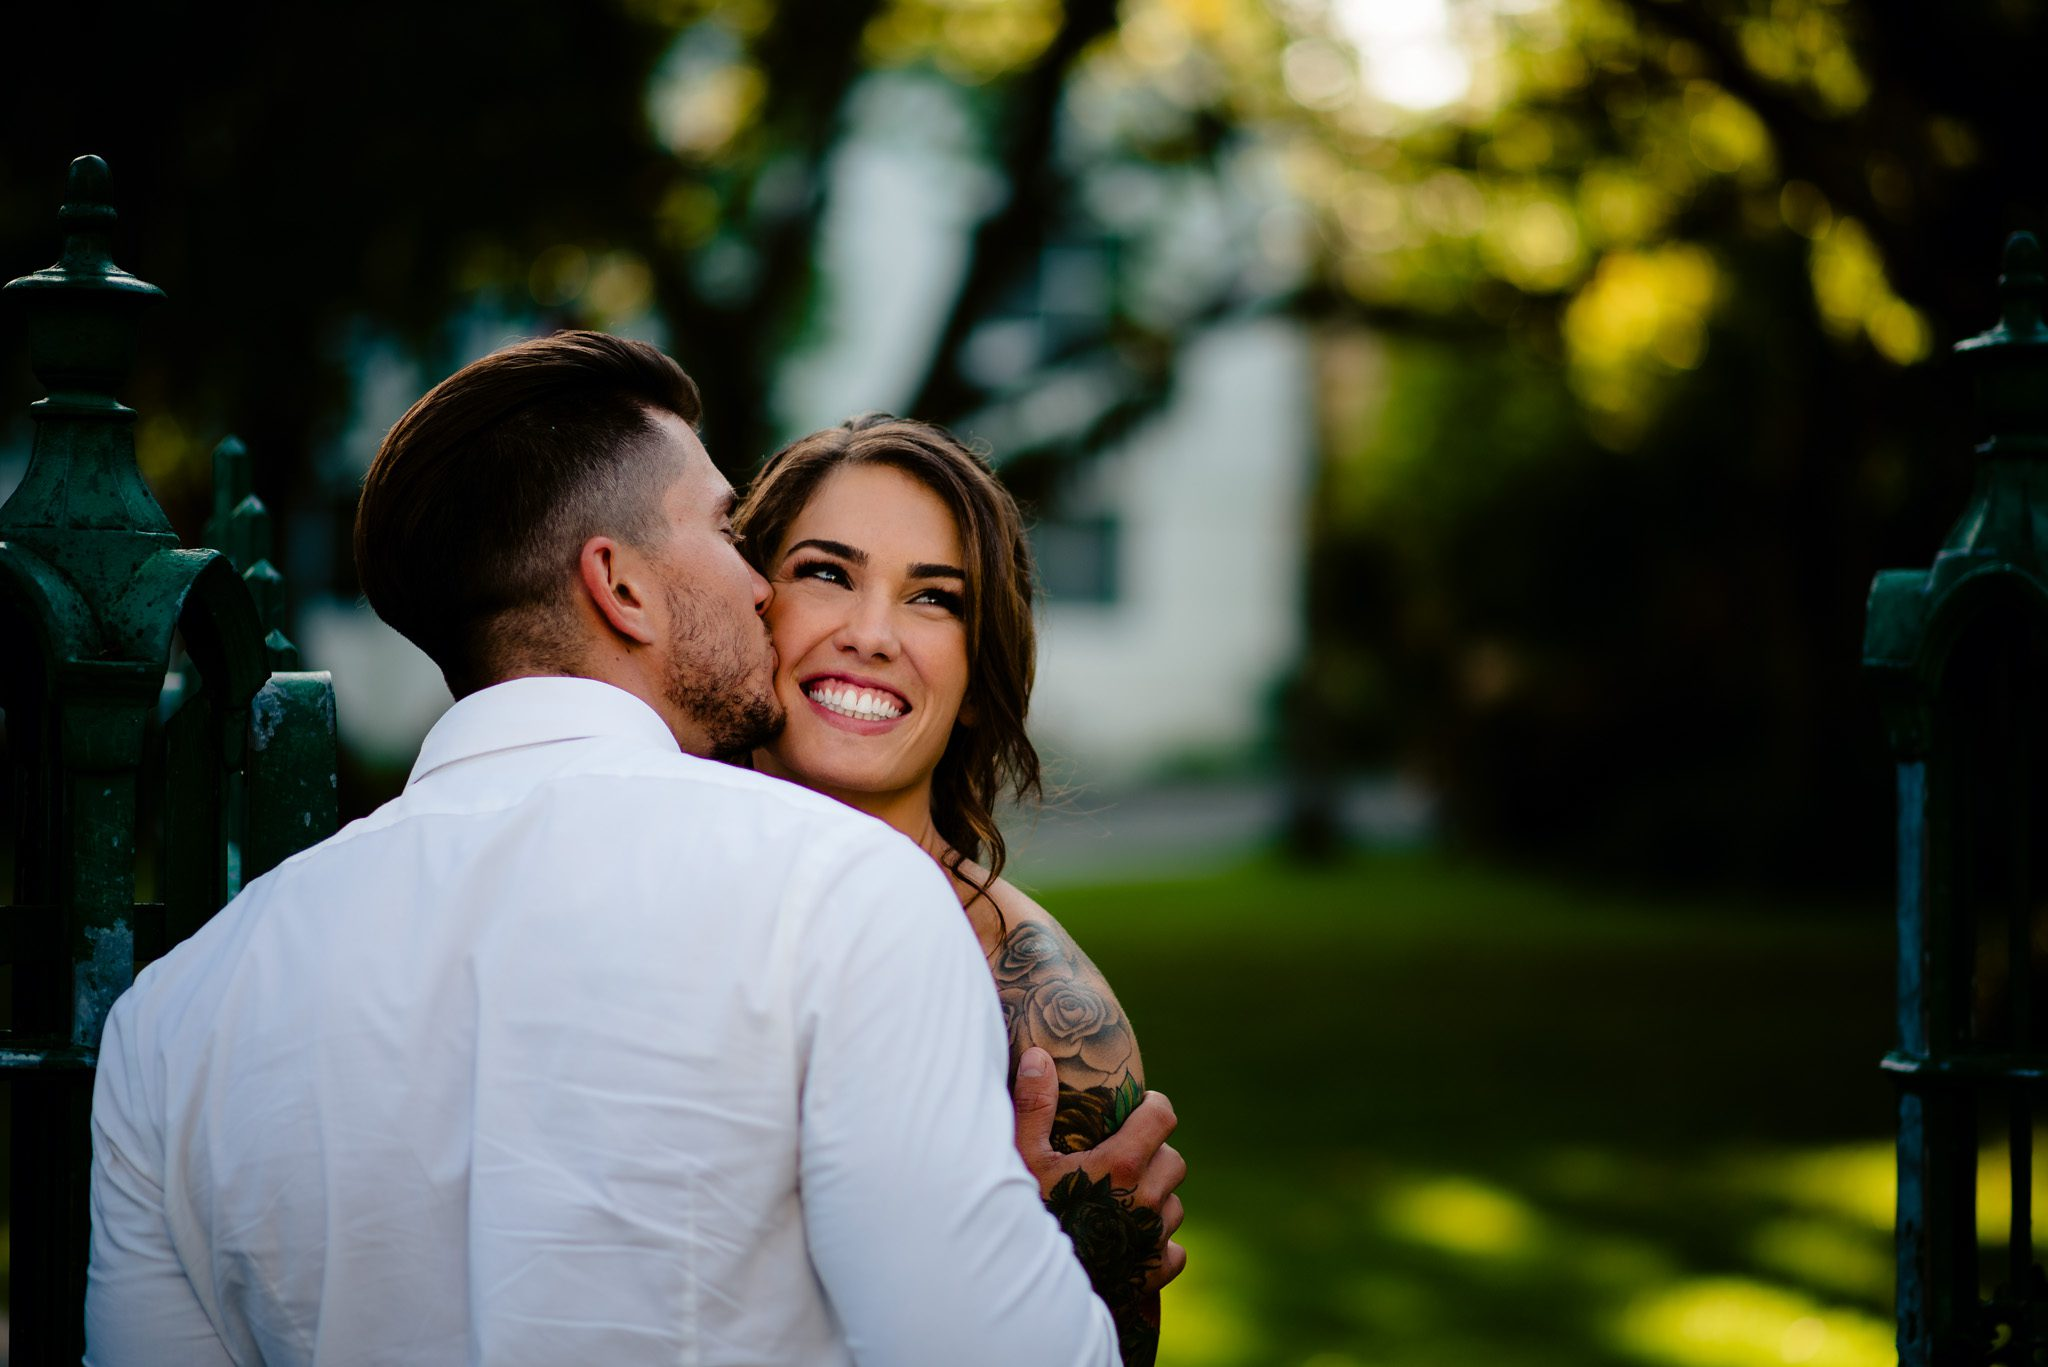 Newly engaged couple kissing during a photoshoot